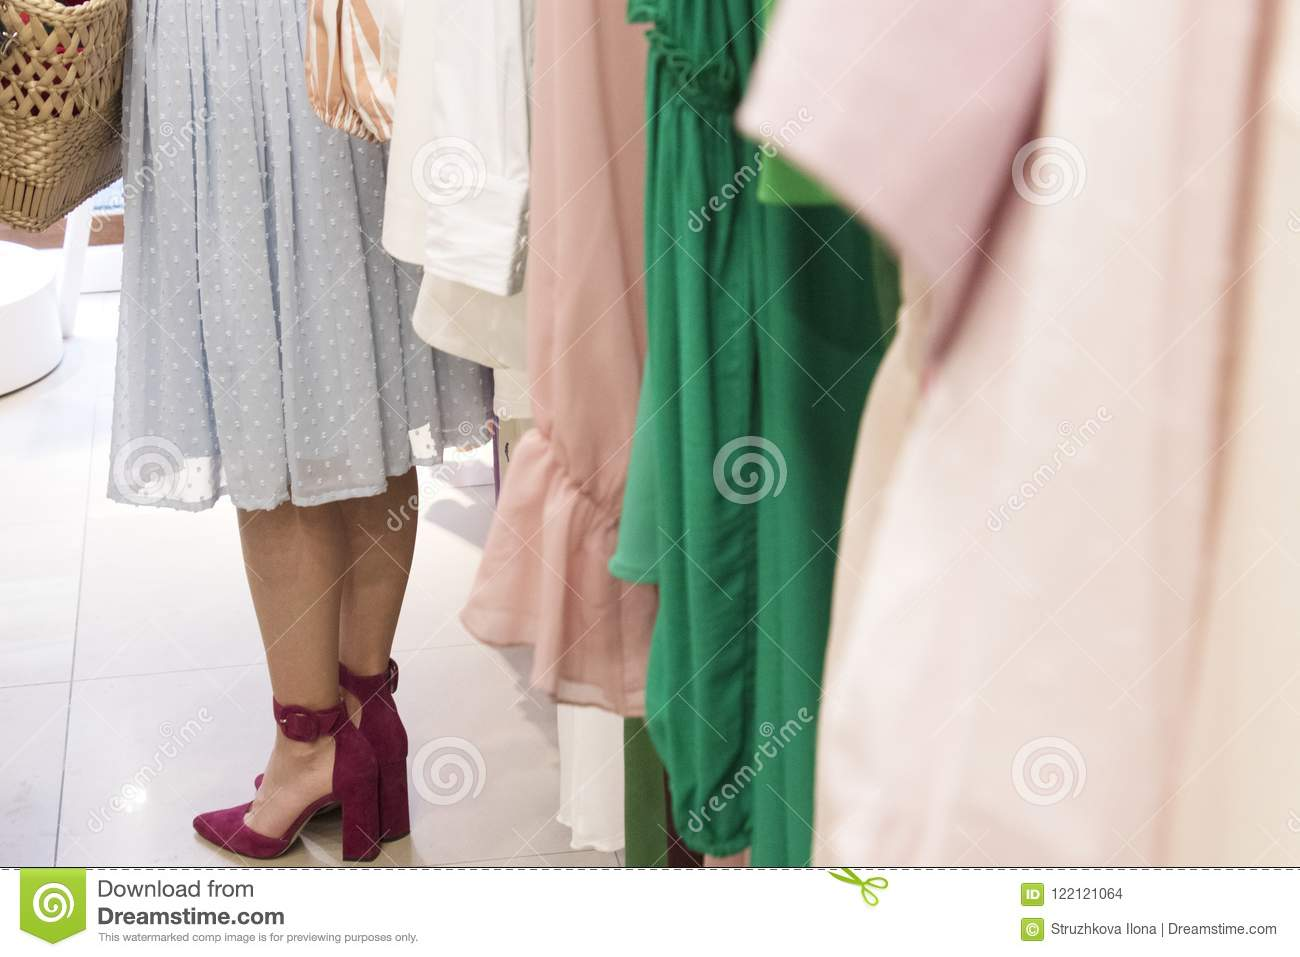 Girl in clothings the shop.